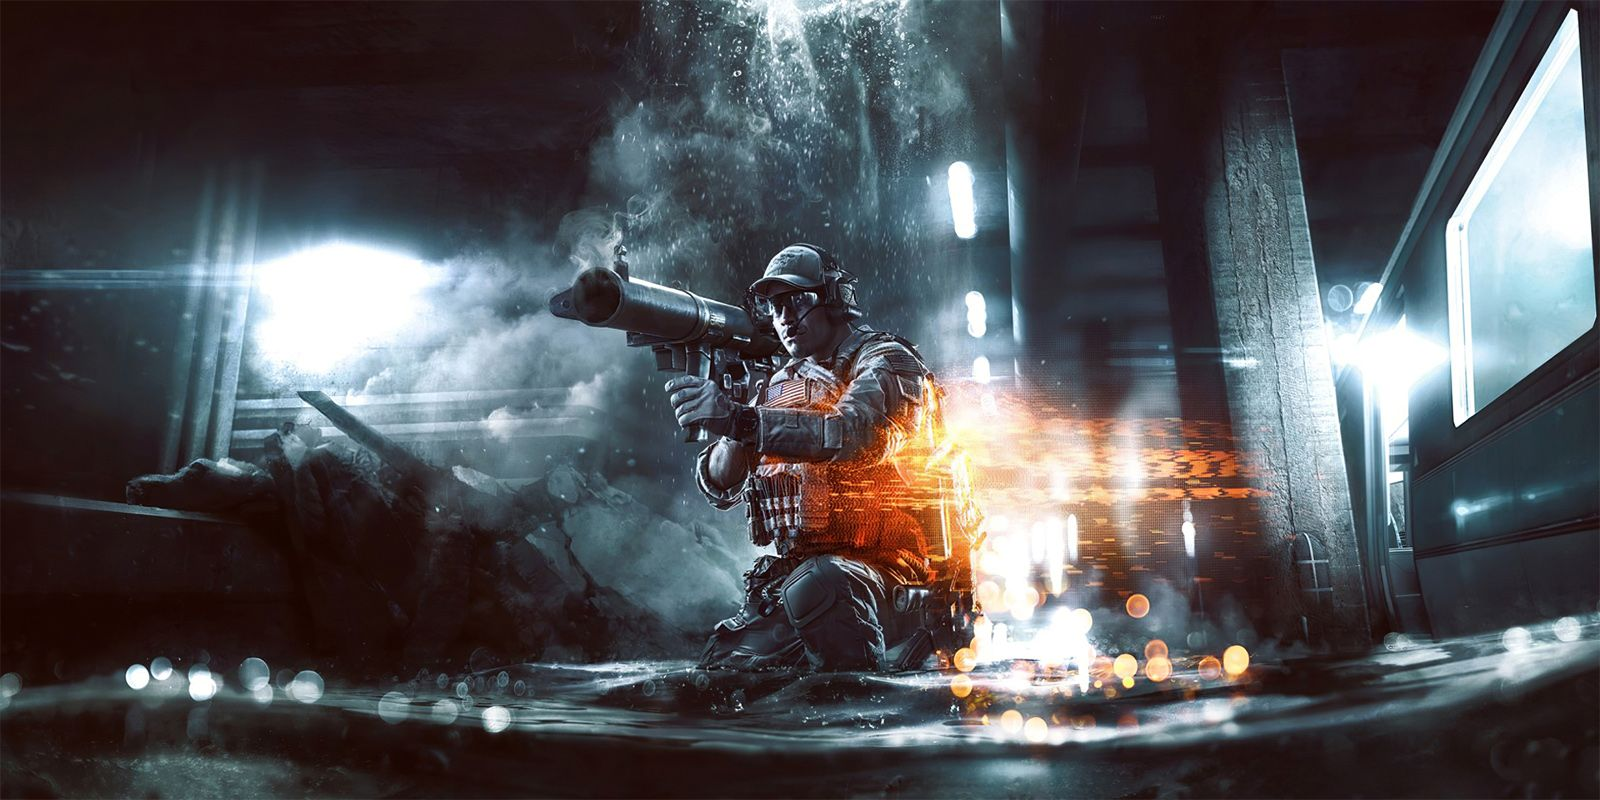 Battlefield 4 Is Free With Amazon Prime Until June 20